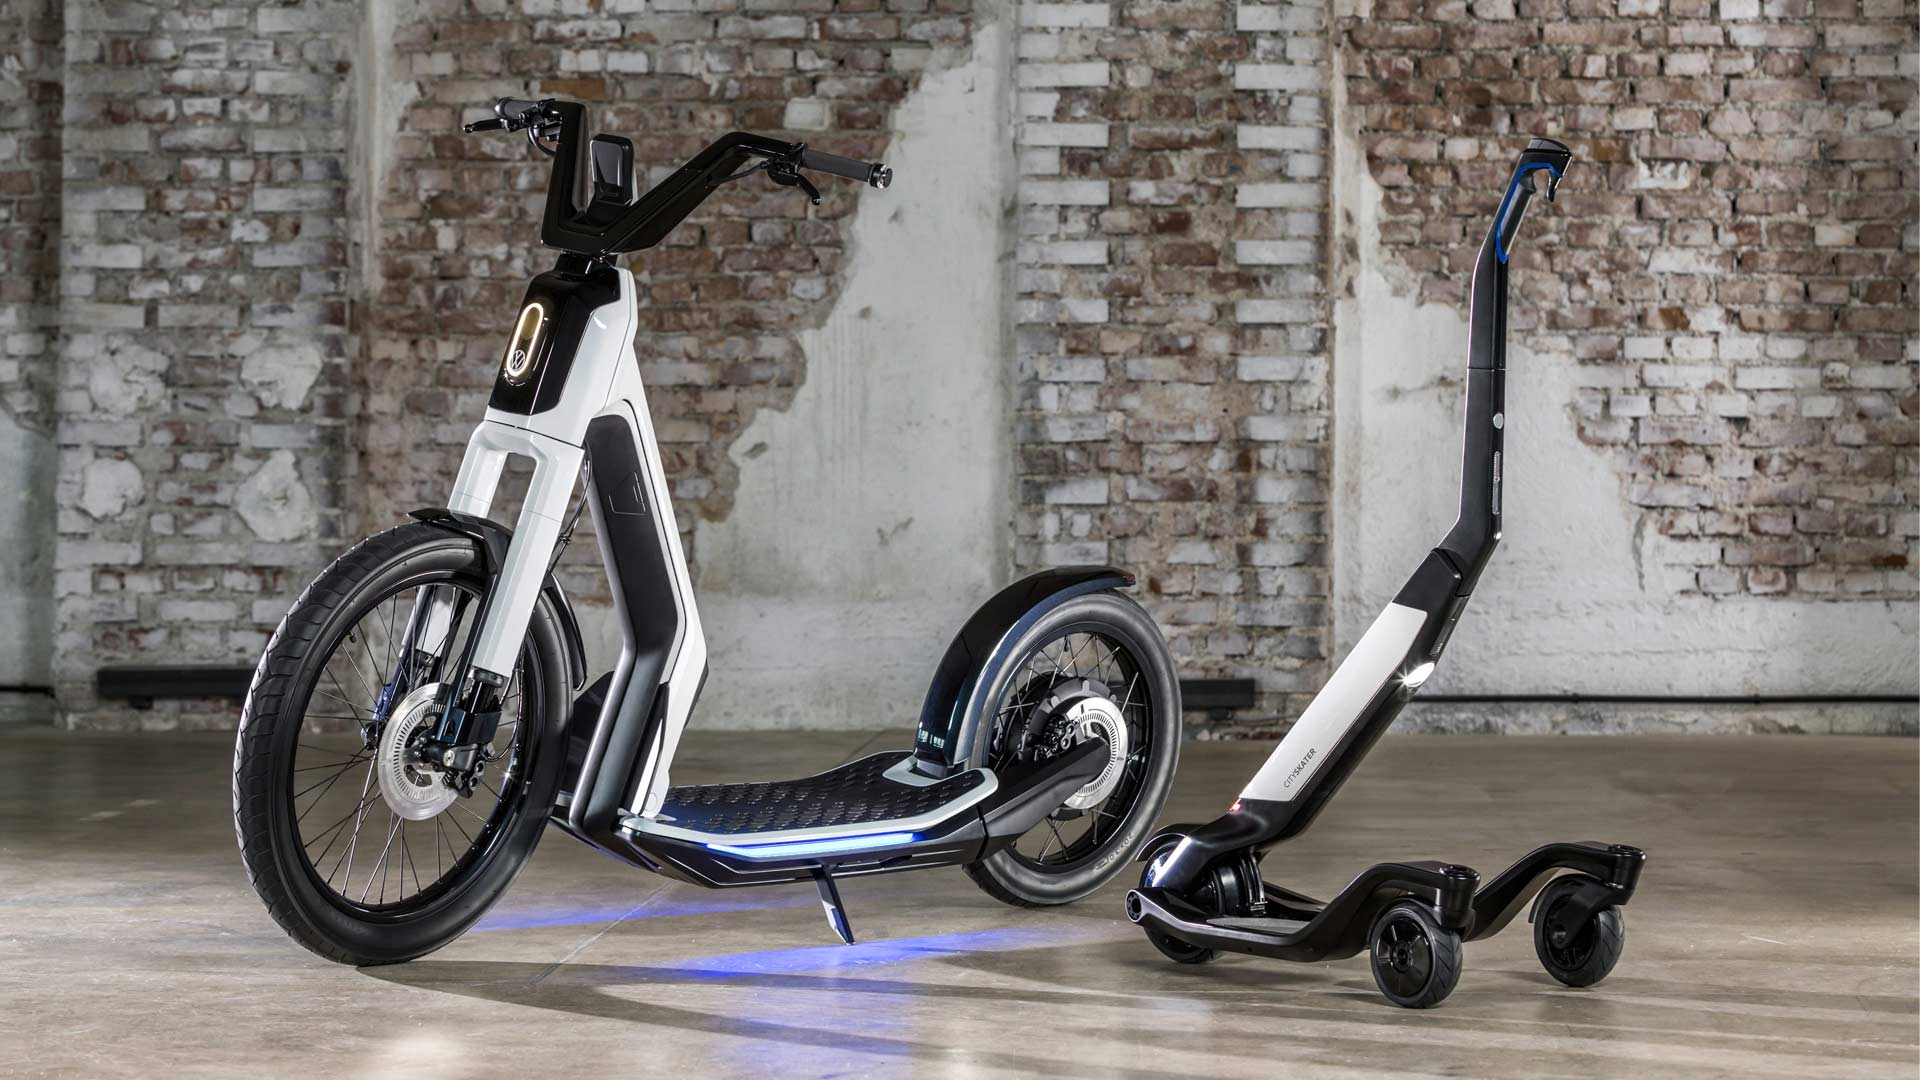 Volkswagen I.D. Streetmate and I.D. Cityskater electric scooters